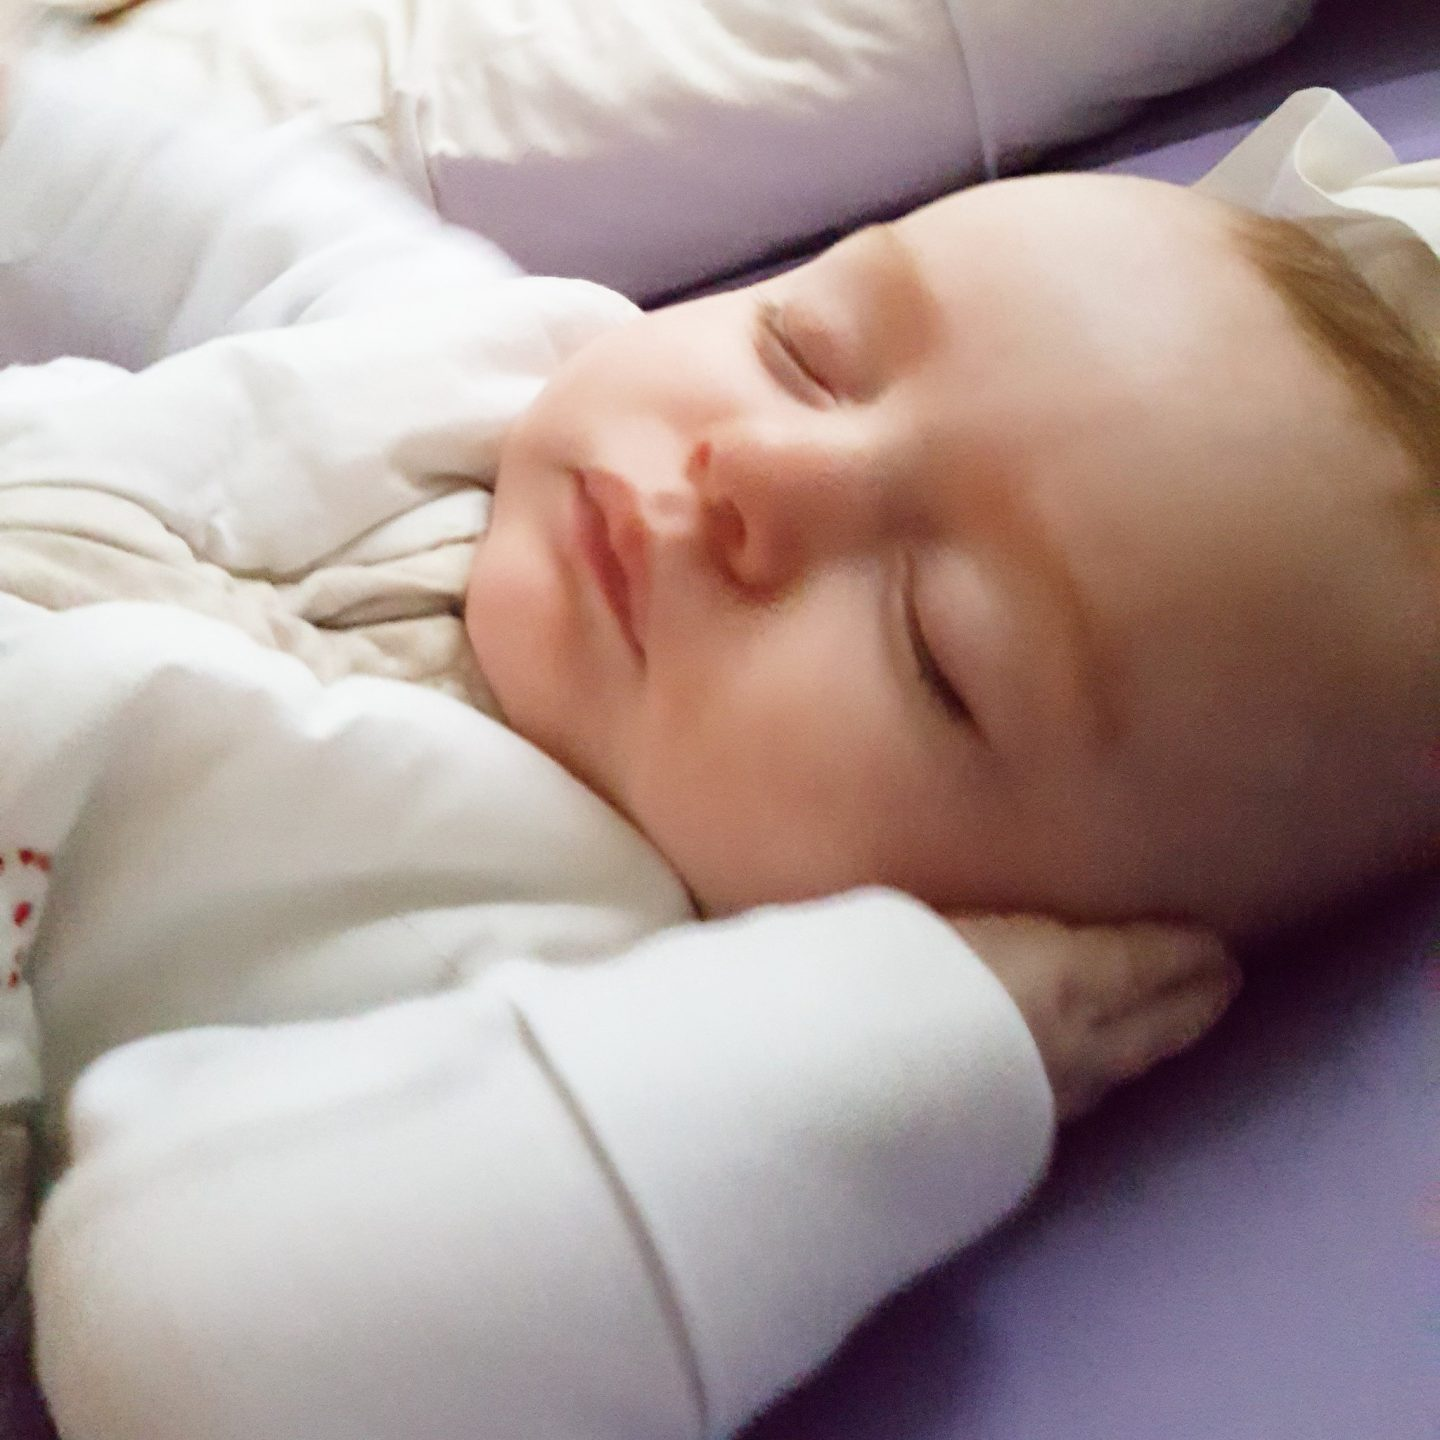 Could using essential oils help my baby nap better?